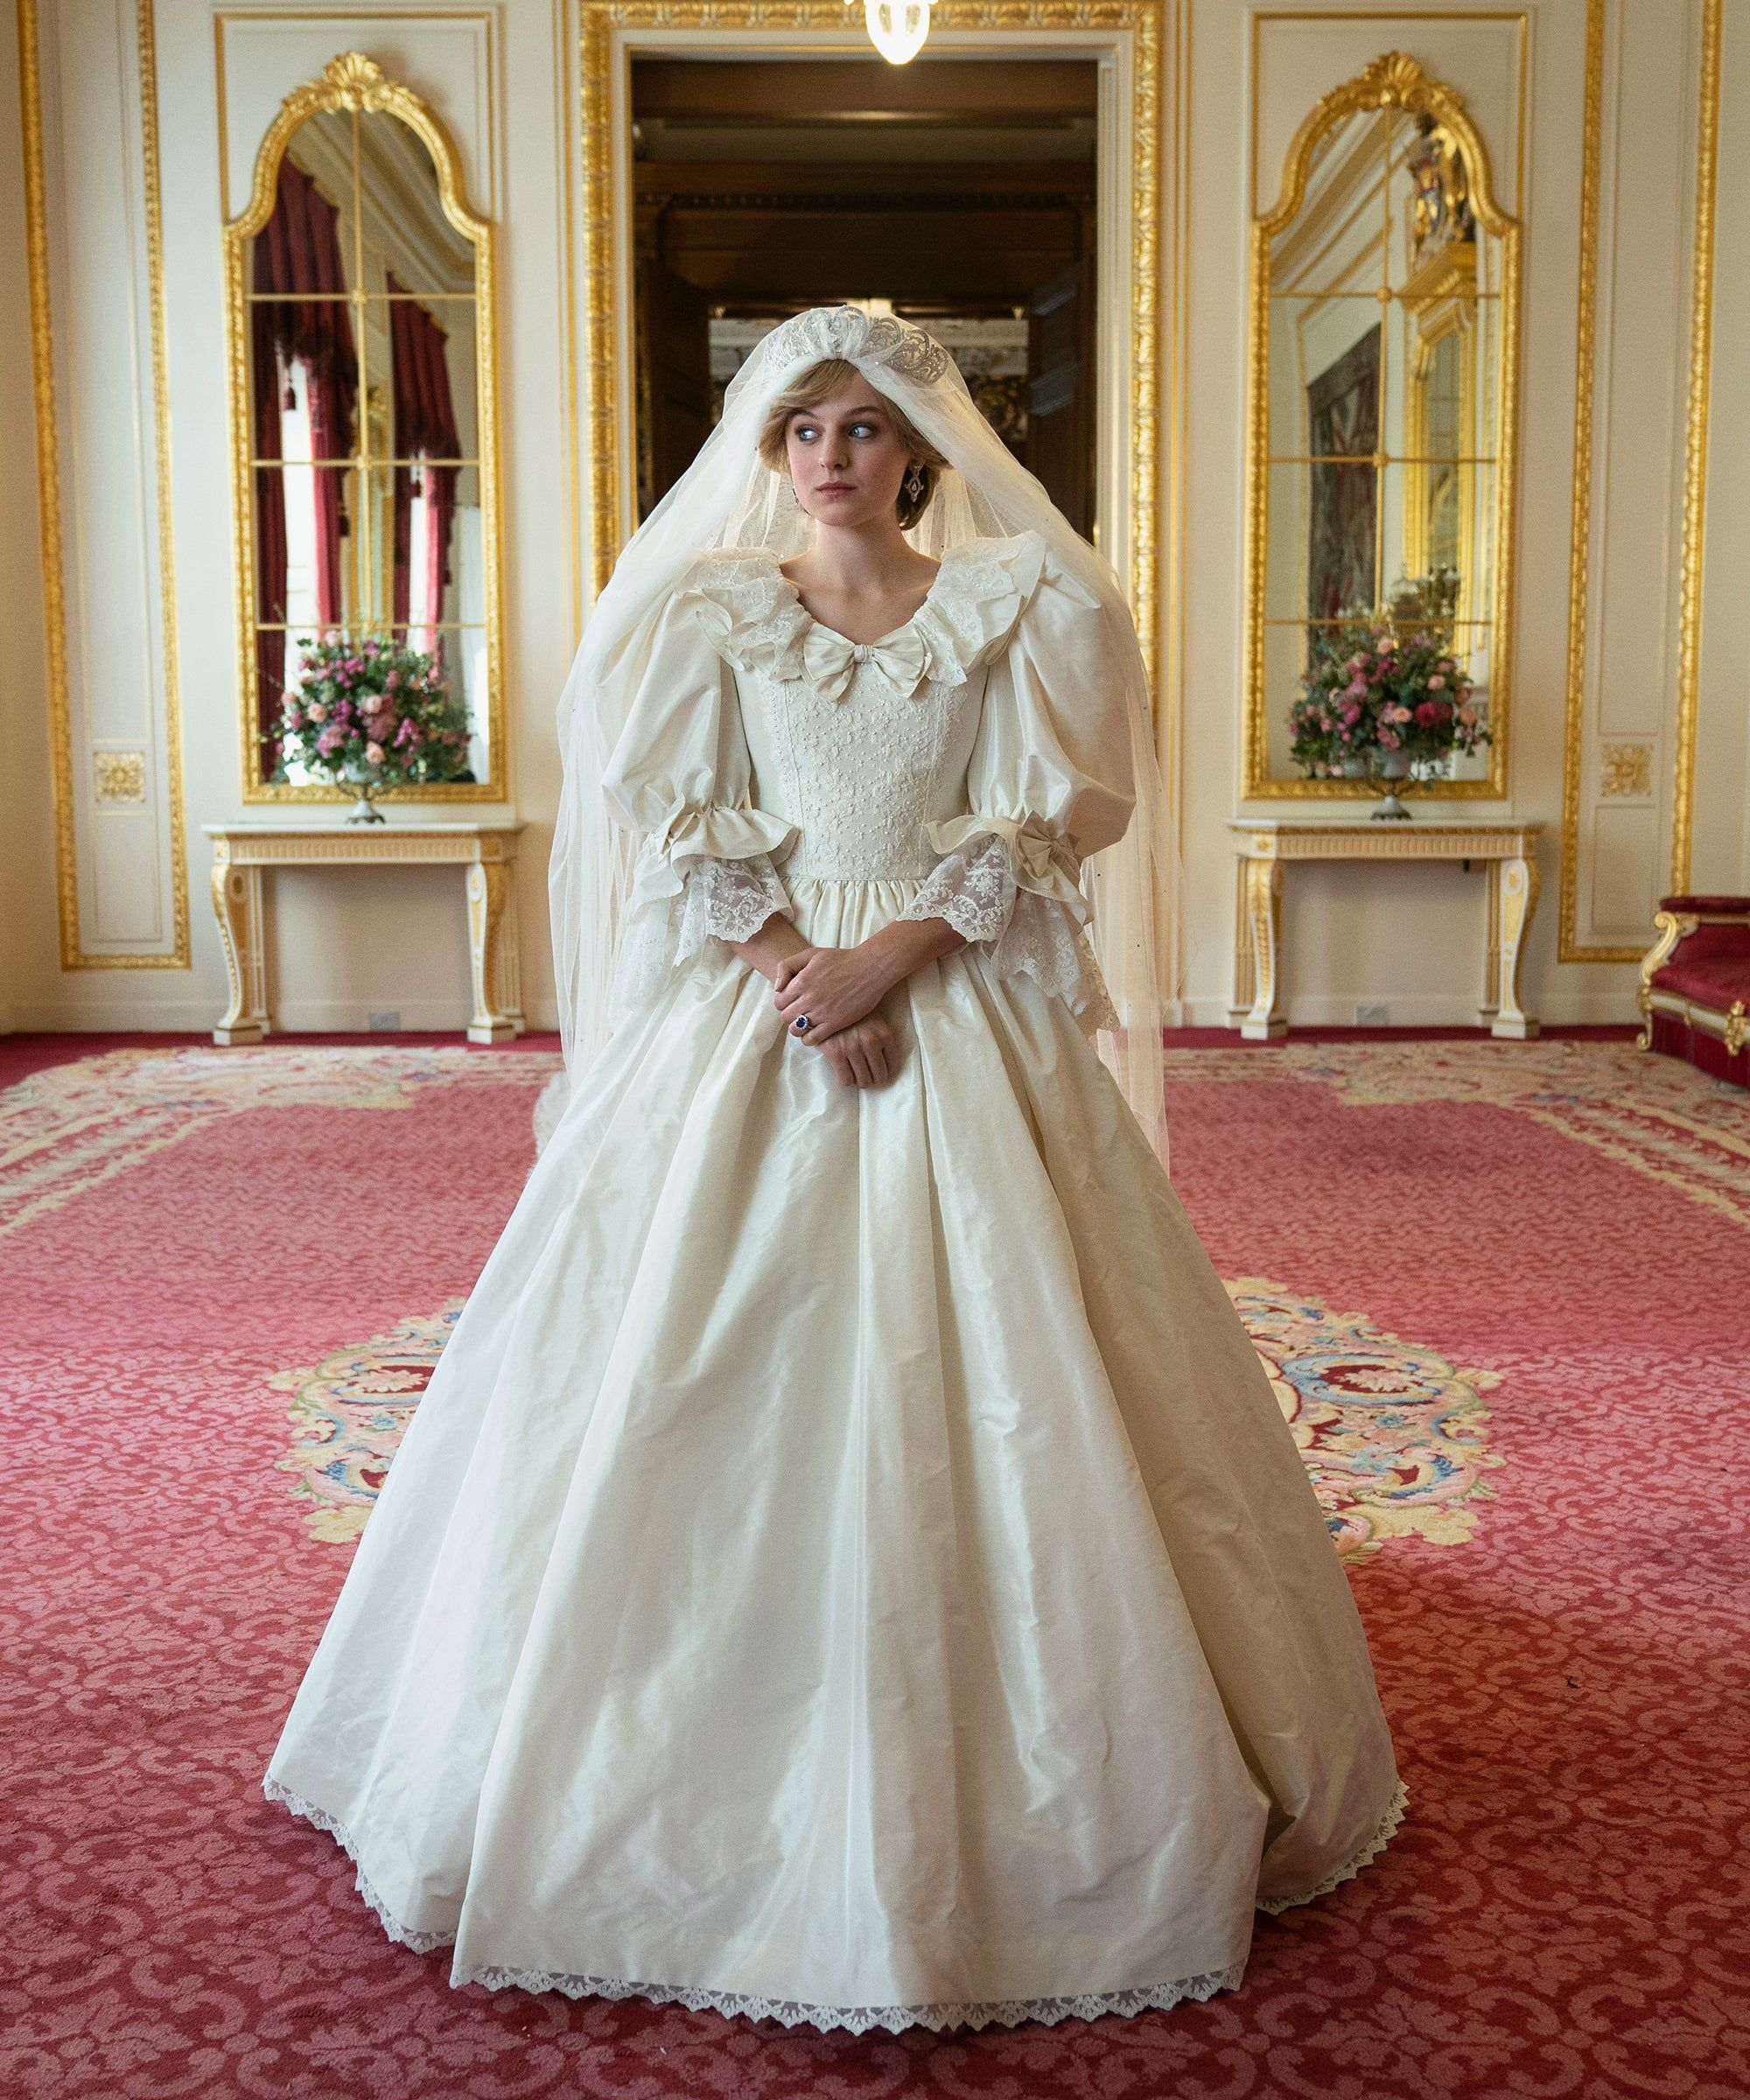 16 Looks From The Crown Inspired By Princess Diana S Best Fashion Moments In 2021 Wedding Dresses Princess Diana Wedding Dress Diana Wedding Dress [ 2400 x 2000 Pixel ]